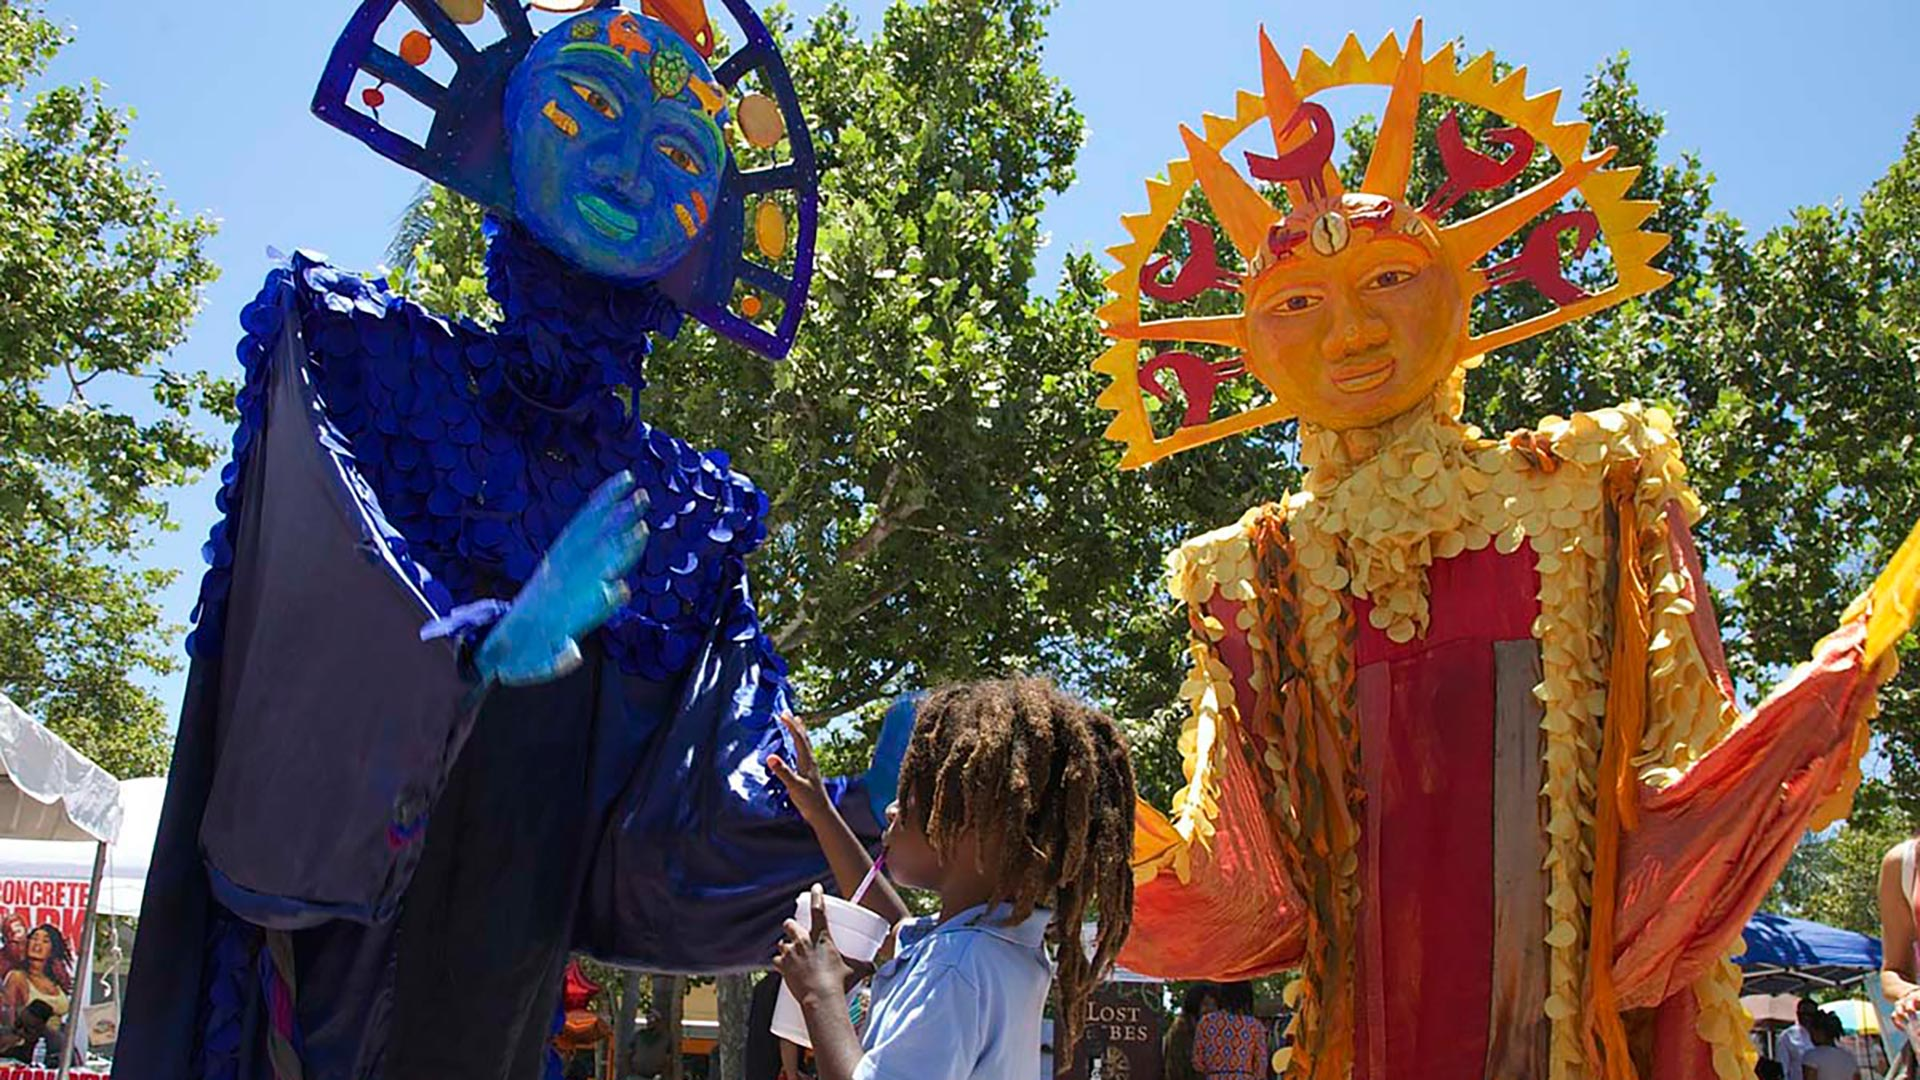 A little boy looks up at two masked figures at the 2017 edition of the Day of the Ancestors: Festival of Masks. | Photo by Sahra Sulaiman, Courtesy of LA Commons